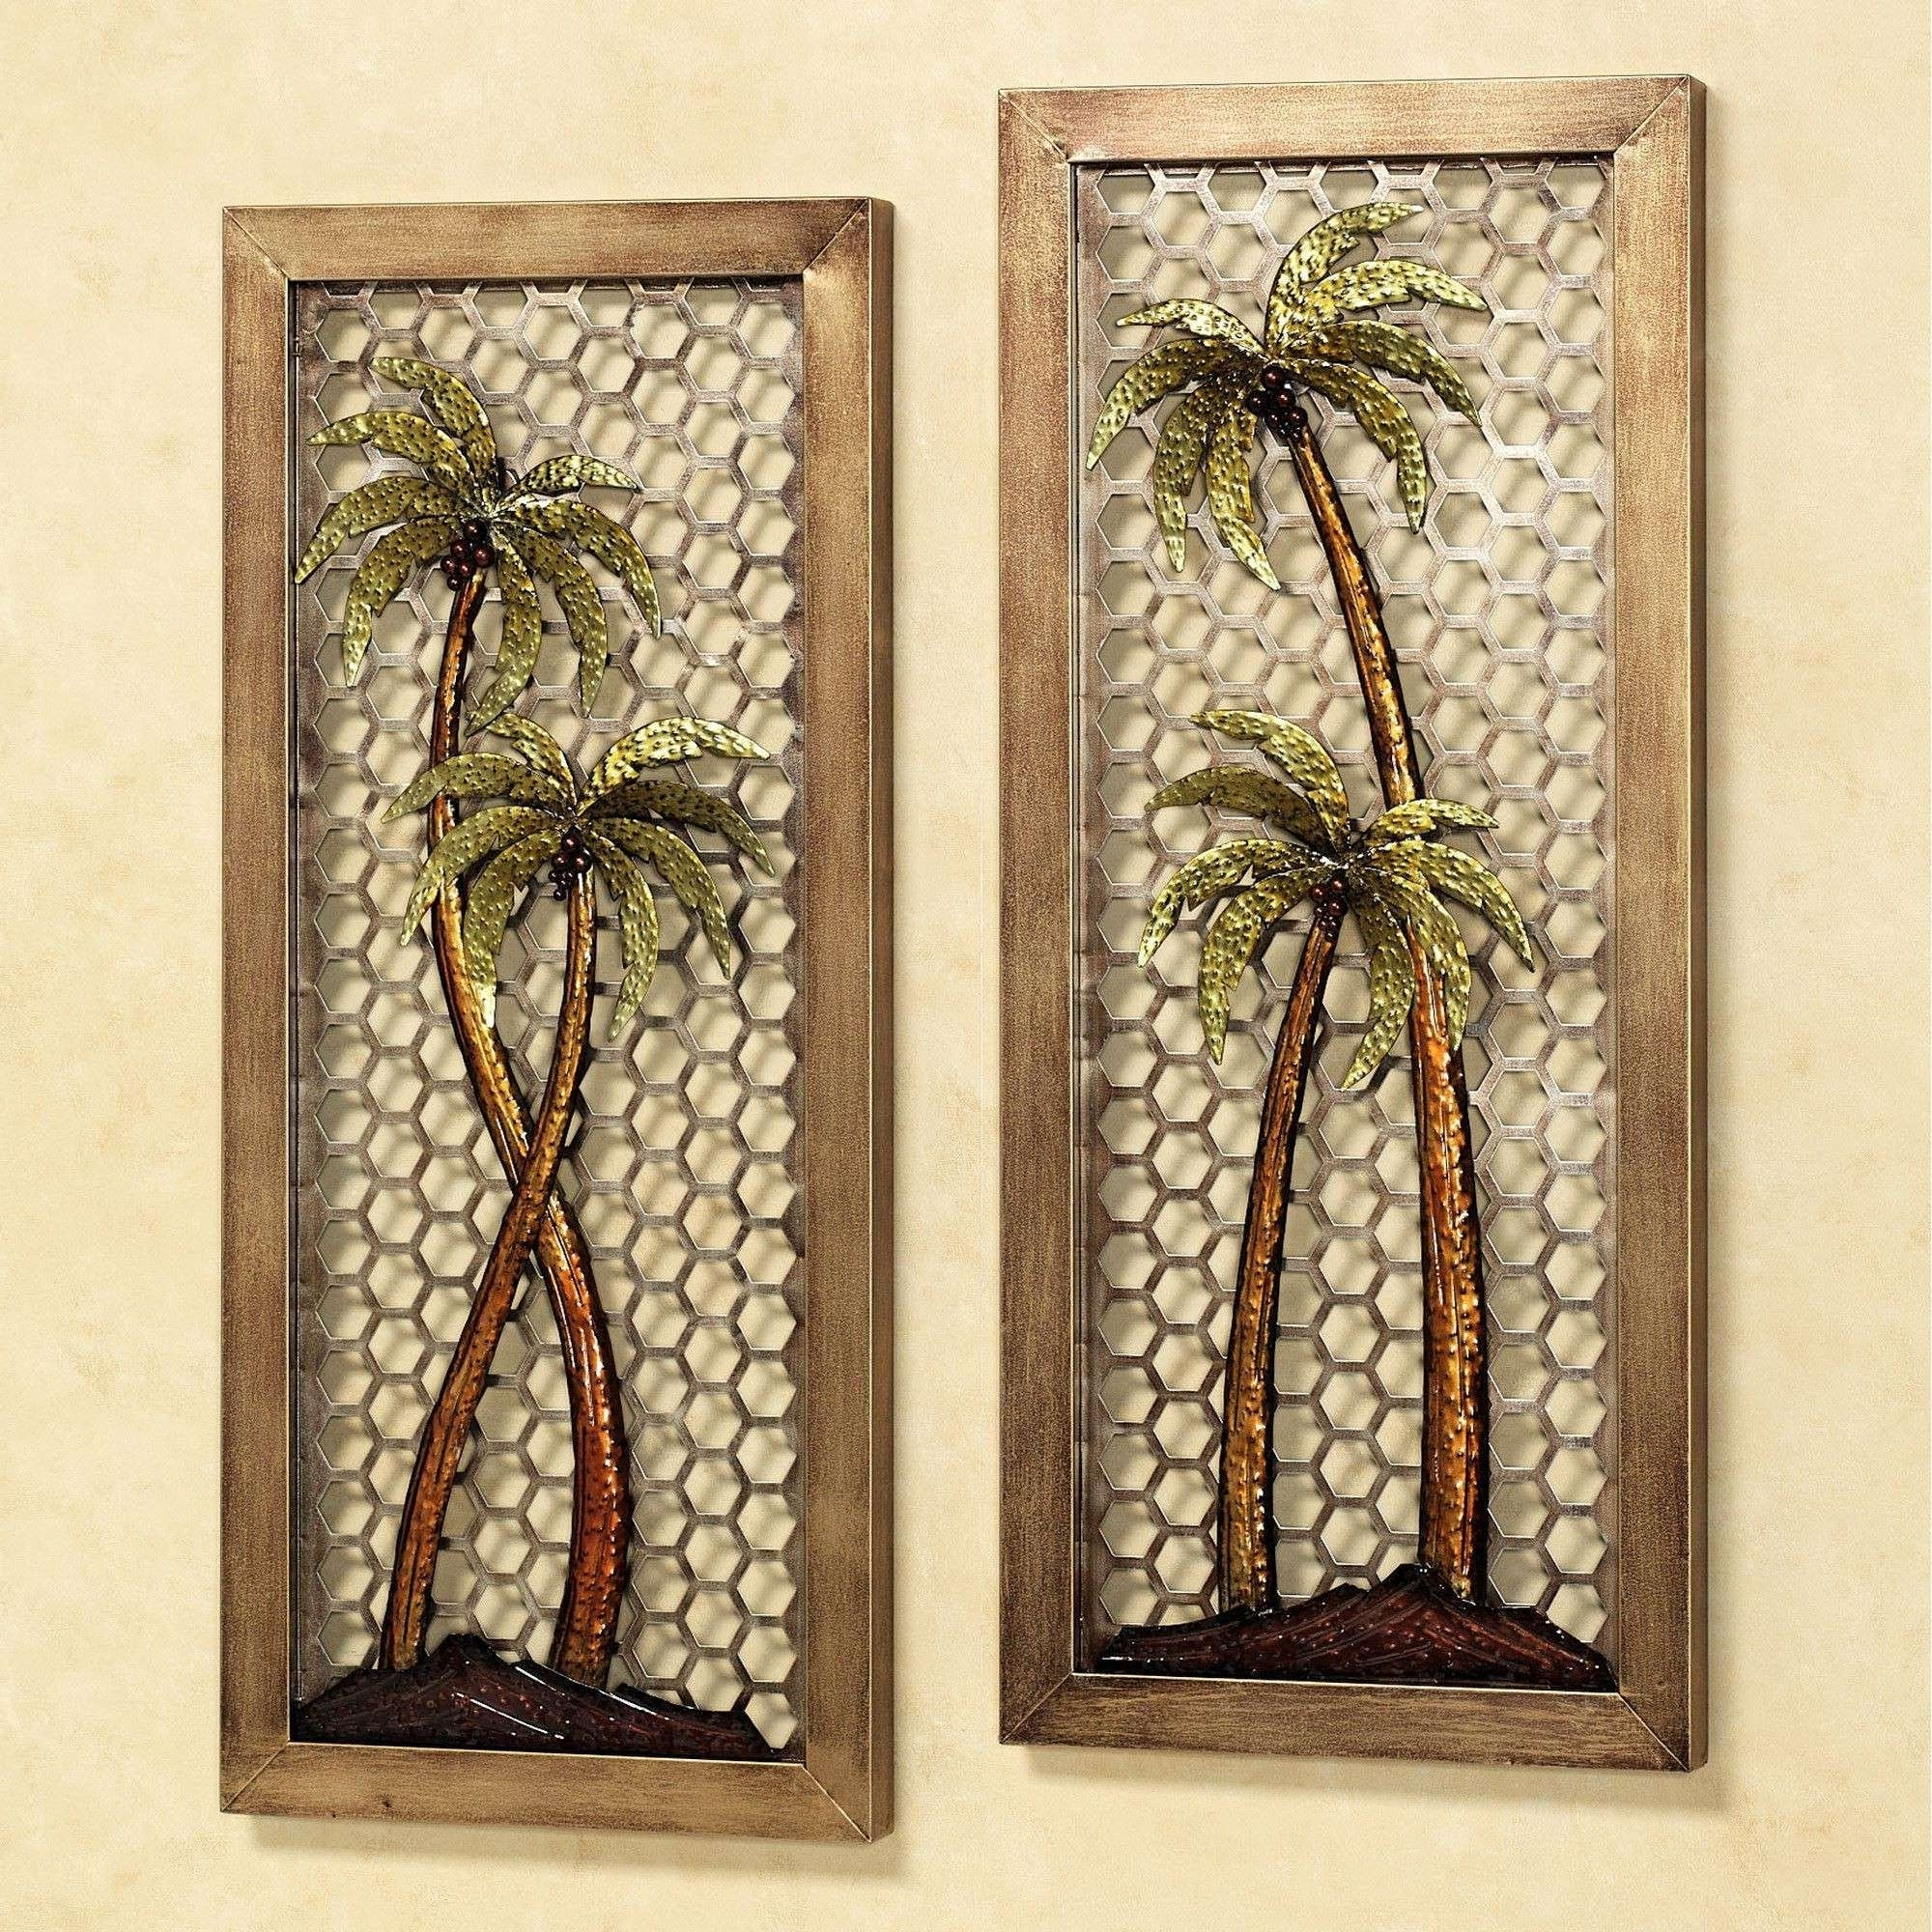 Metal Pictures For Wall Elegant Decorative Metal Wall Art Panels In Preferred Wood And Metal Wall Art (View 8 of 15)